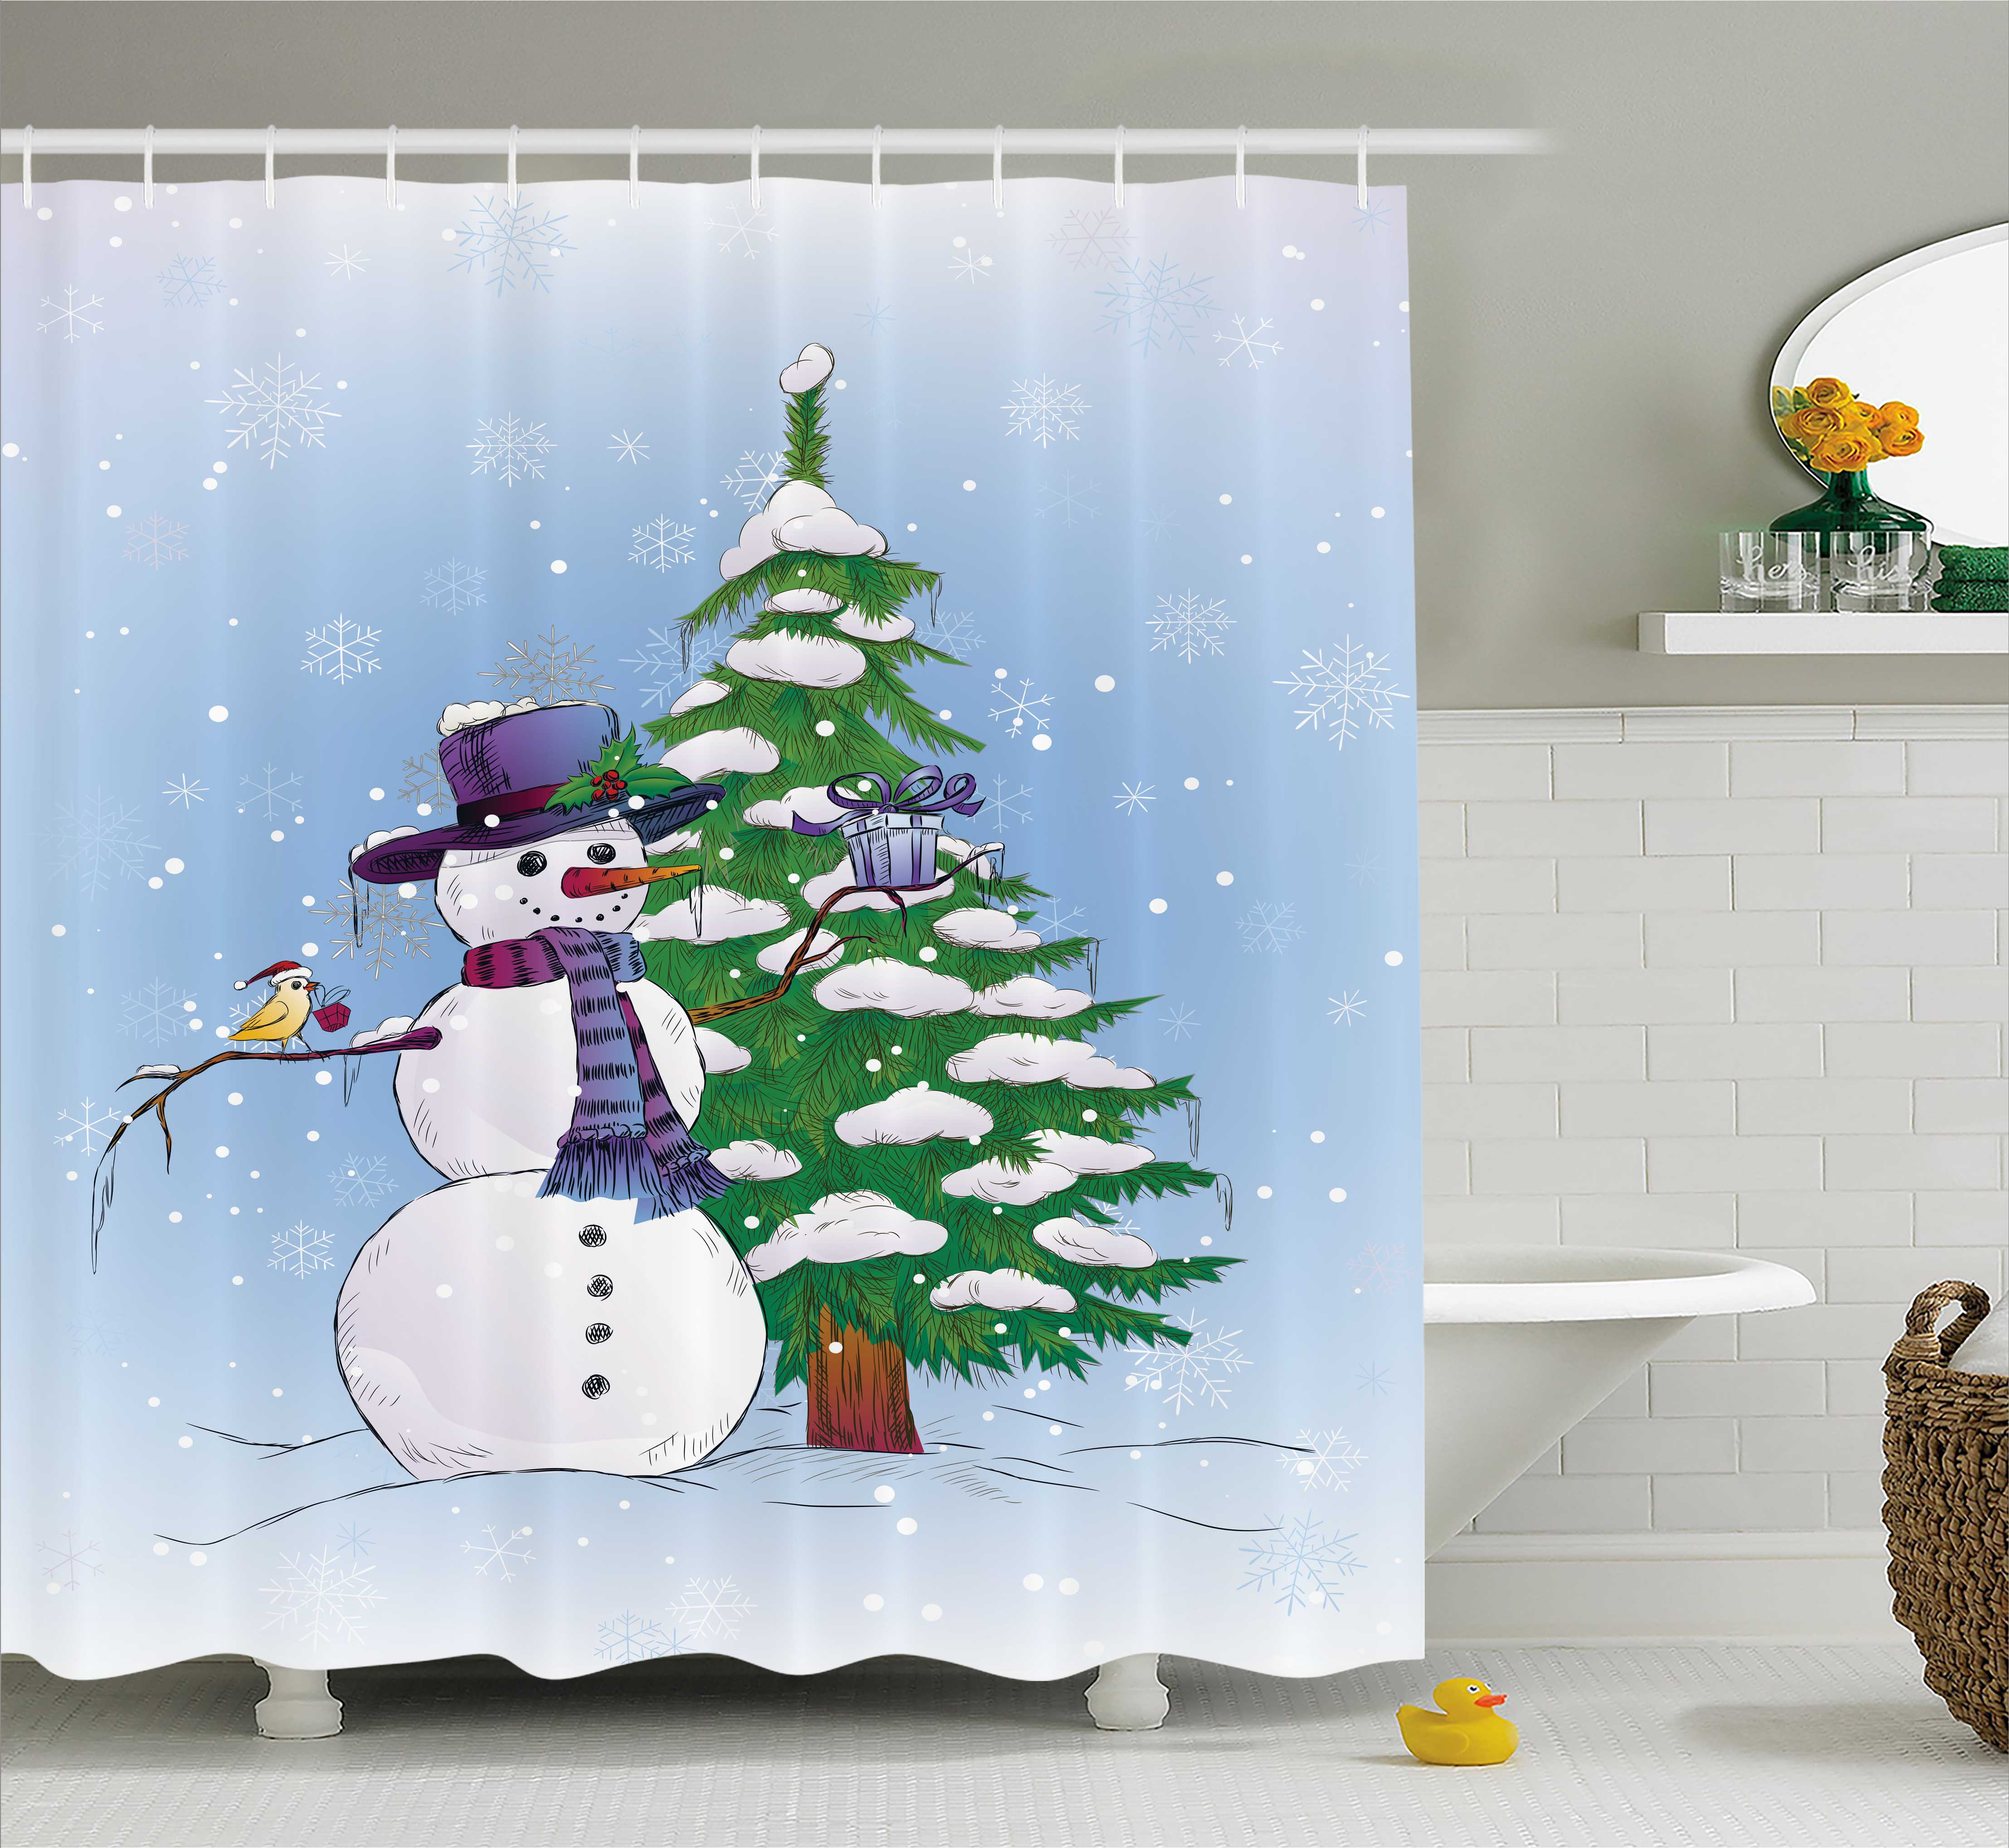 Christmas Decorations Shower Curtain Set, Snowman in Wint...